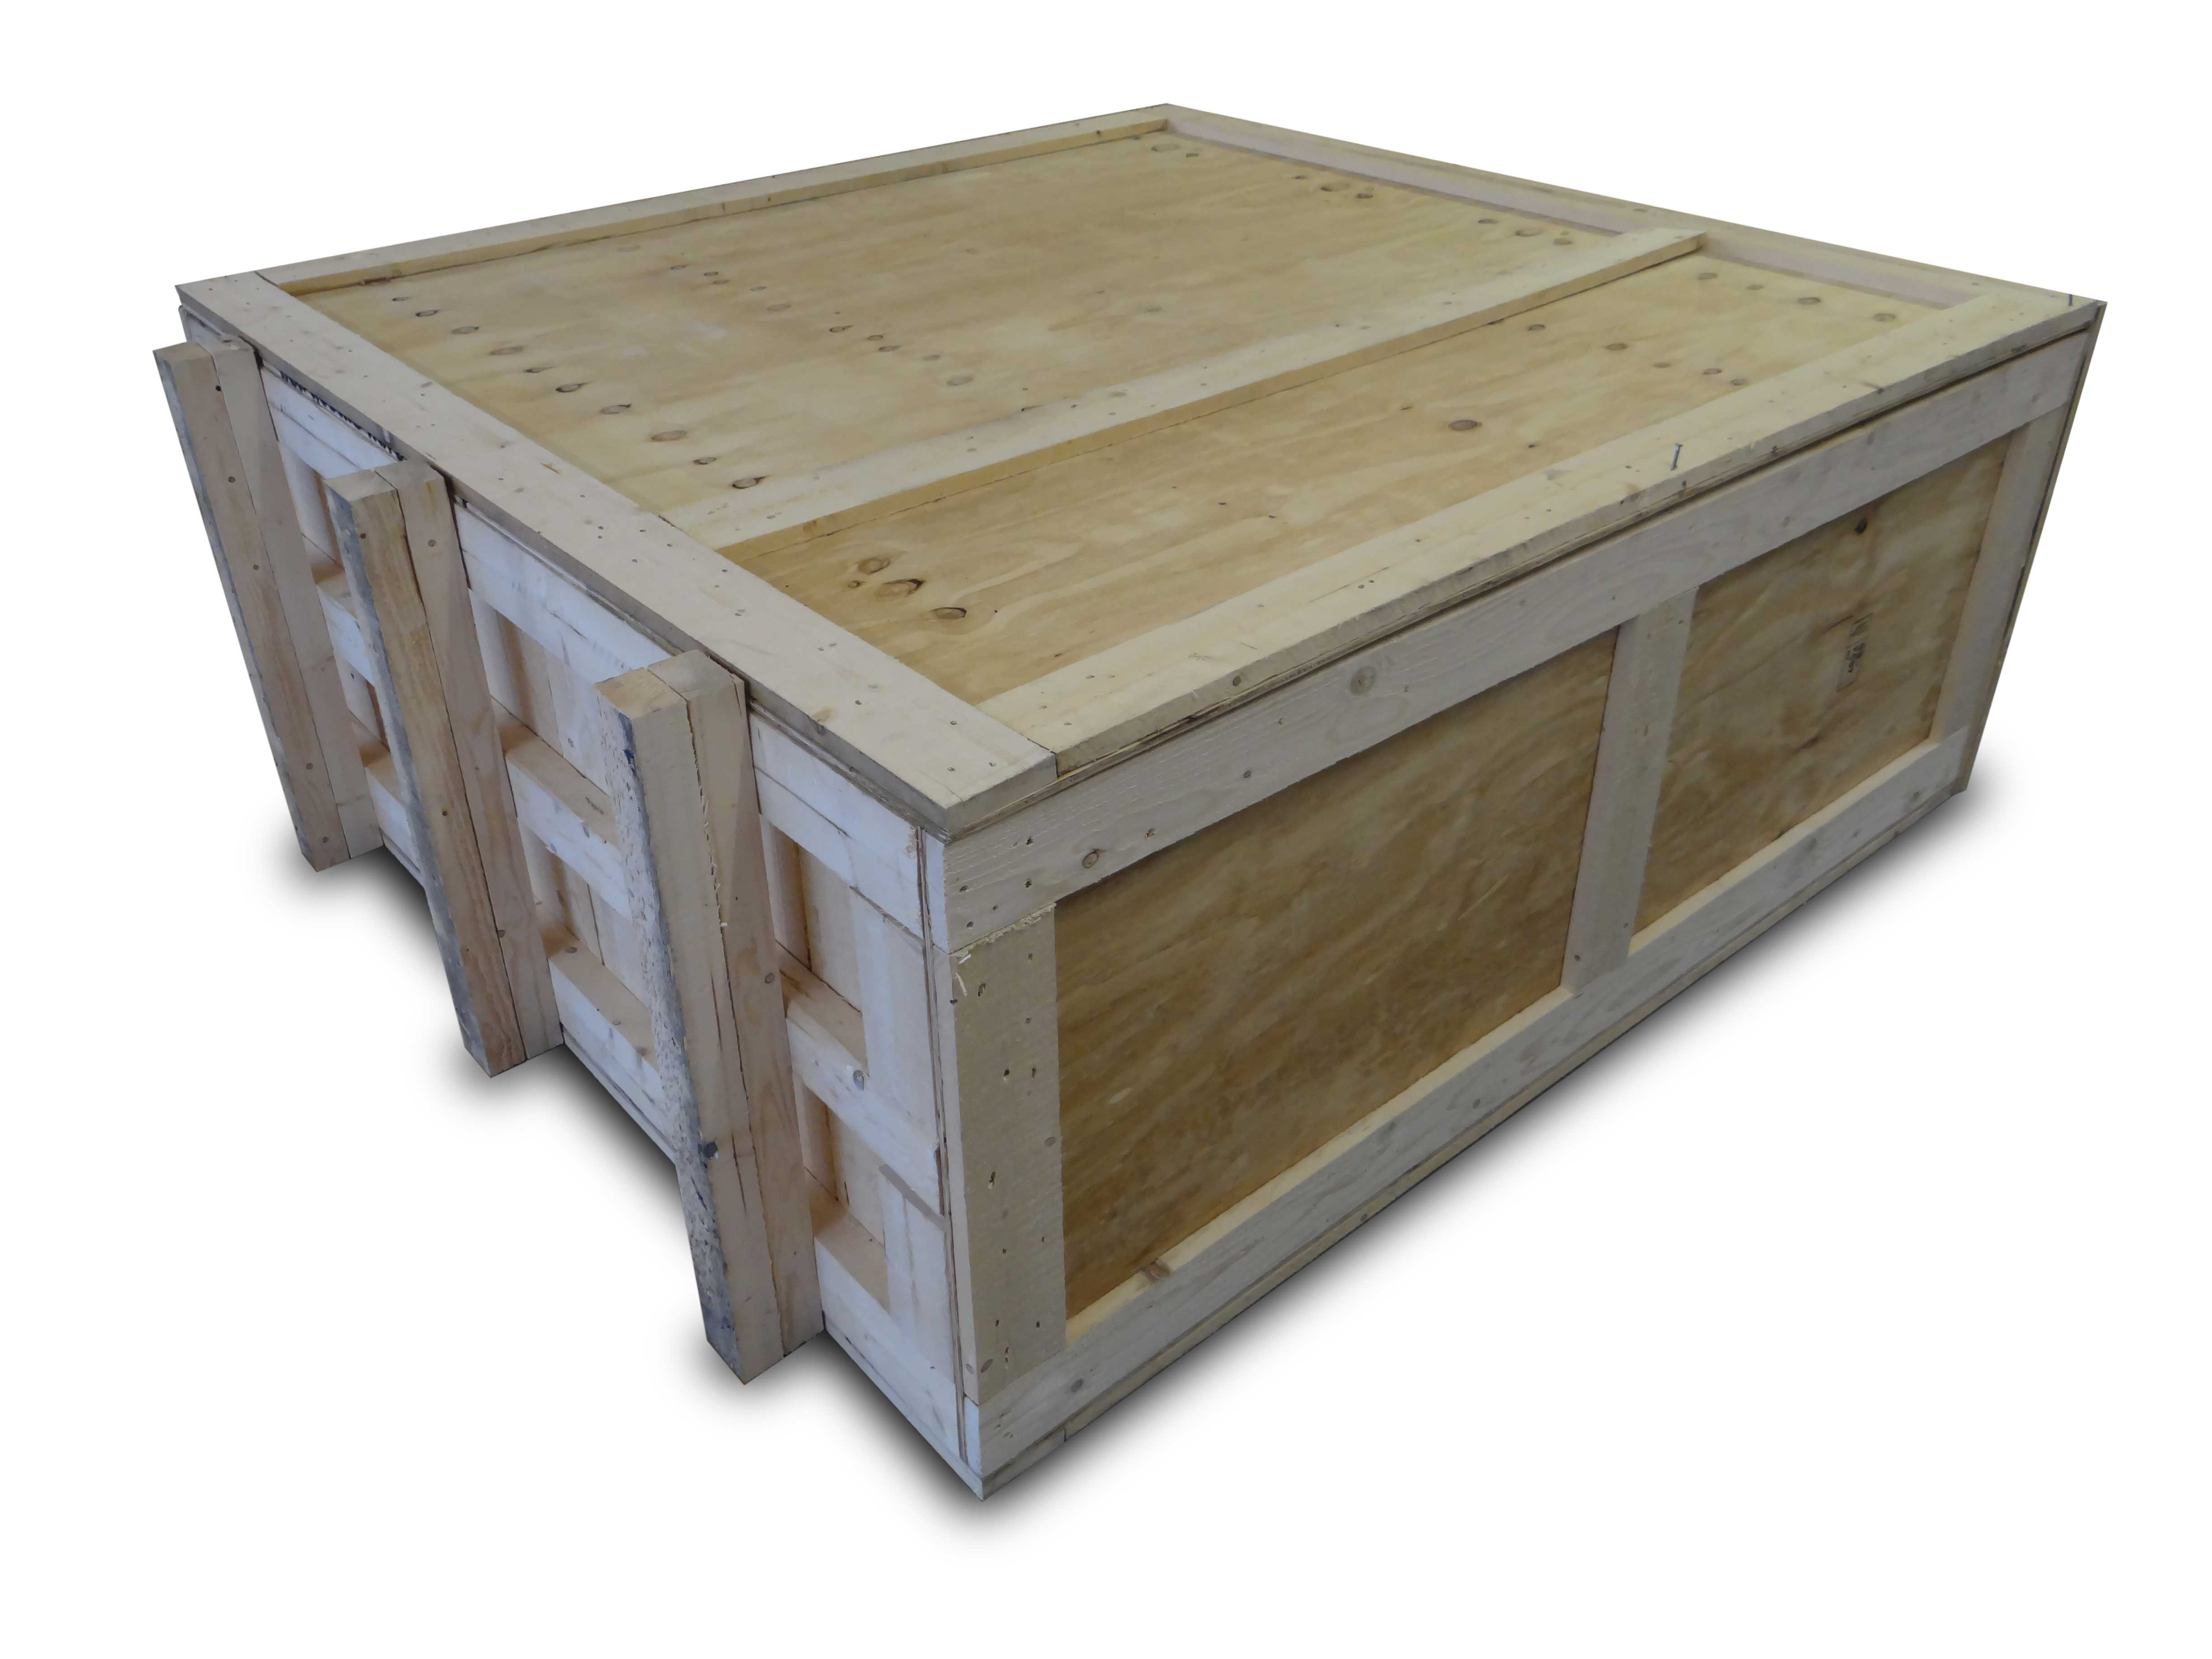 Bespoke Wooden Shipping Crate | - 364.8KB